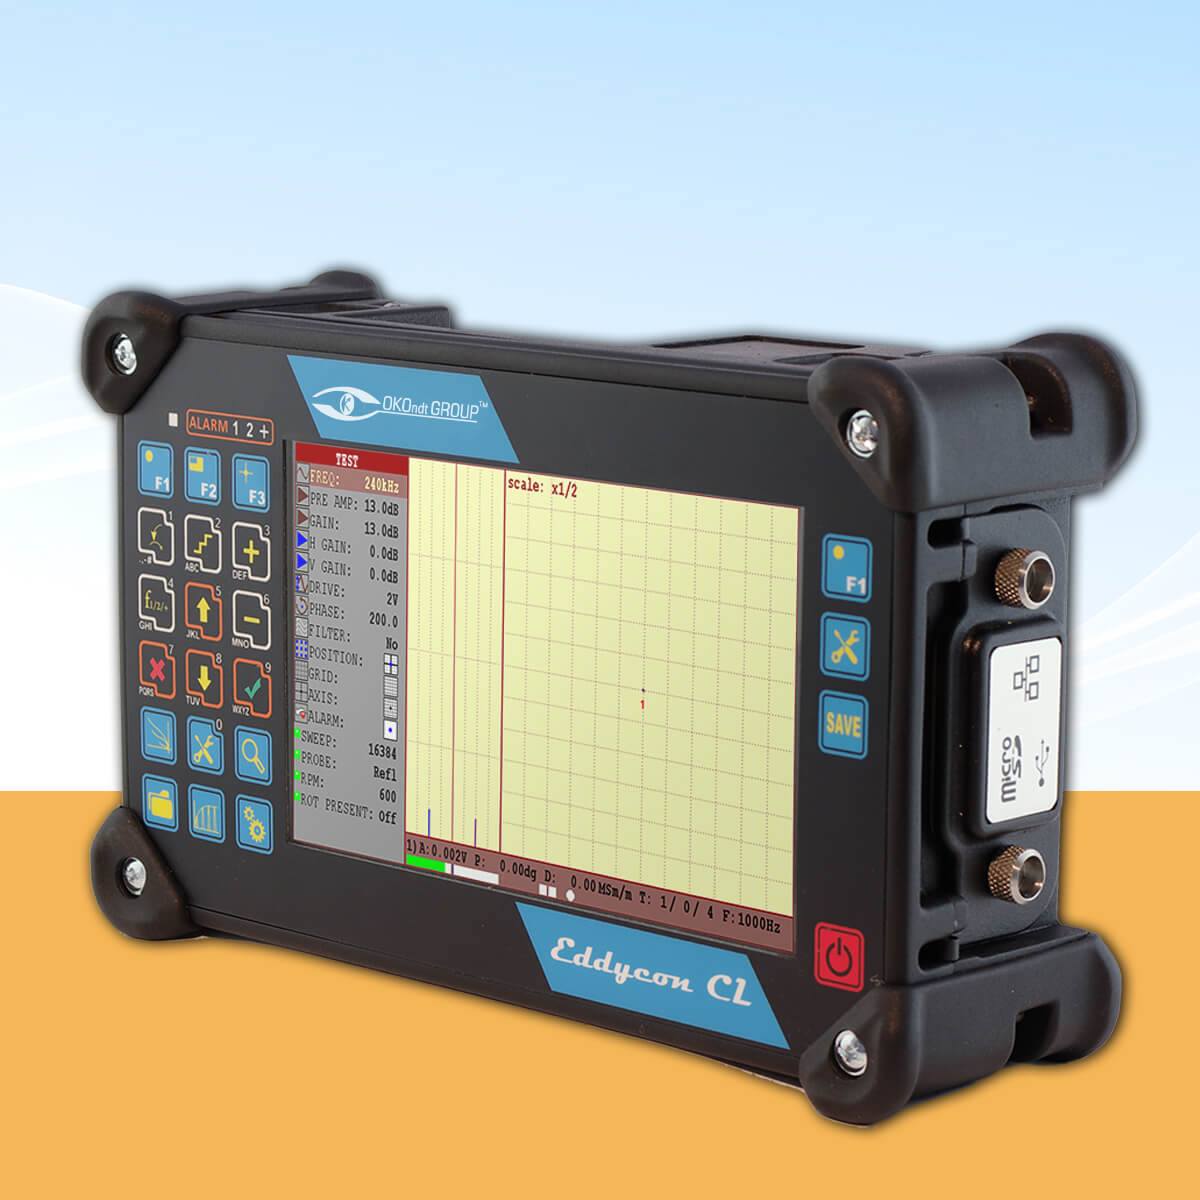 Portable eddy current flaw detector with a large screen Eddycon CL, side view